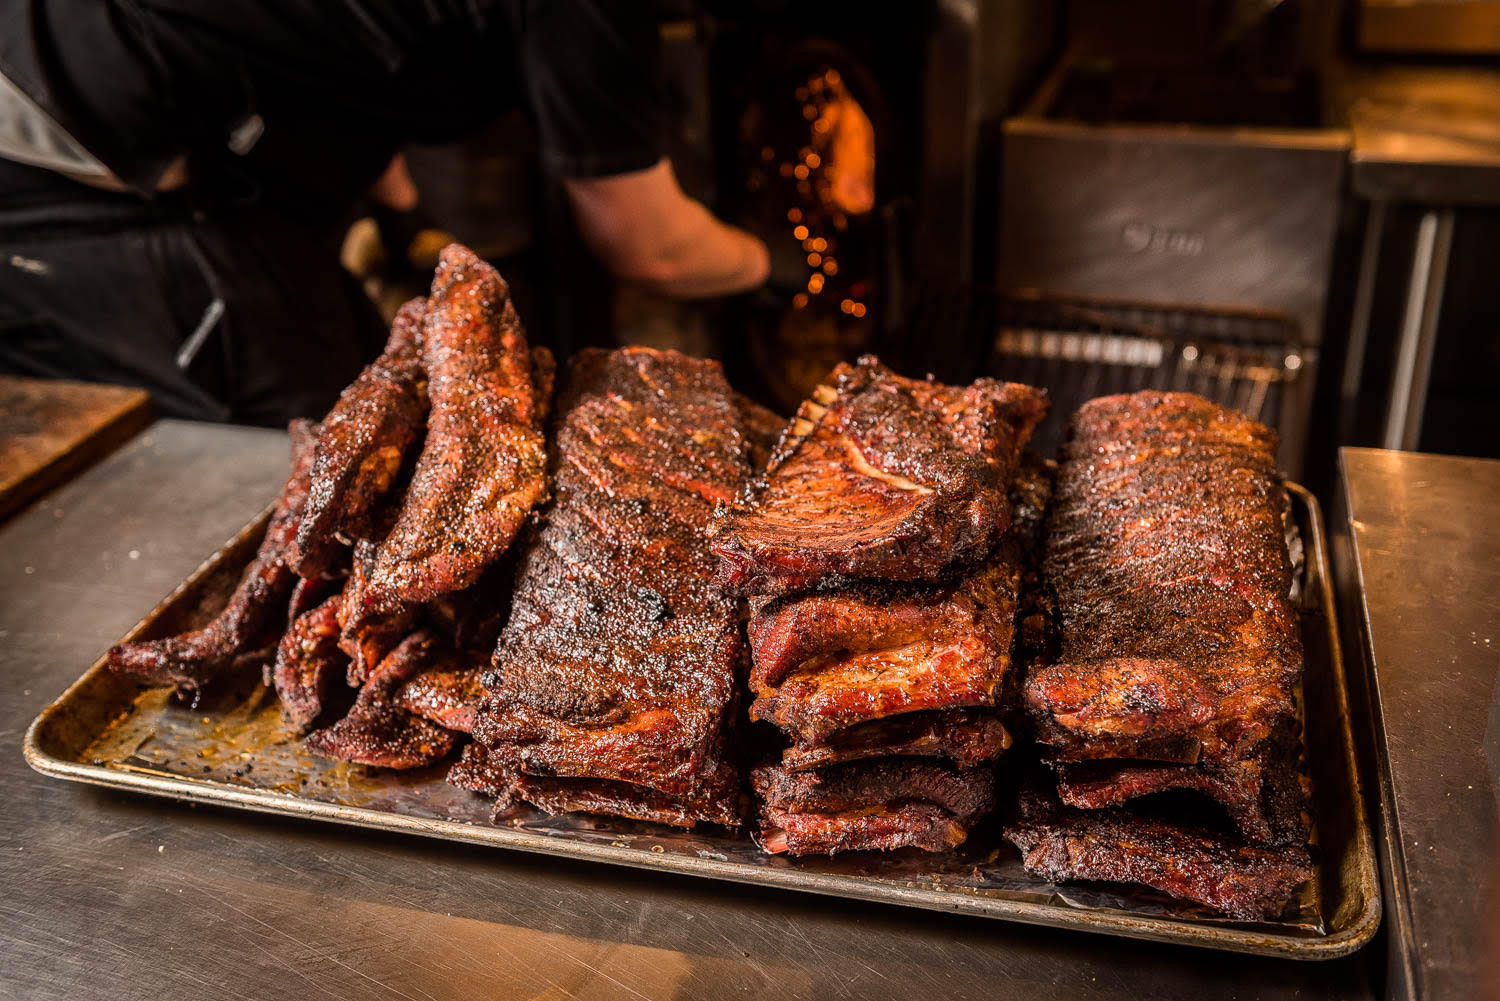 A pile of spare ribs from Federalist Pig